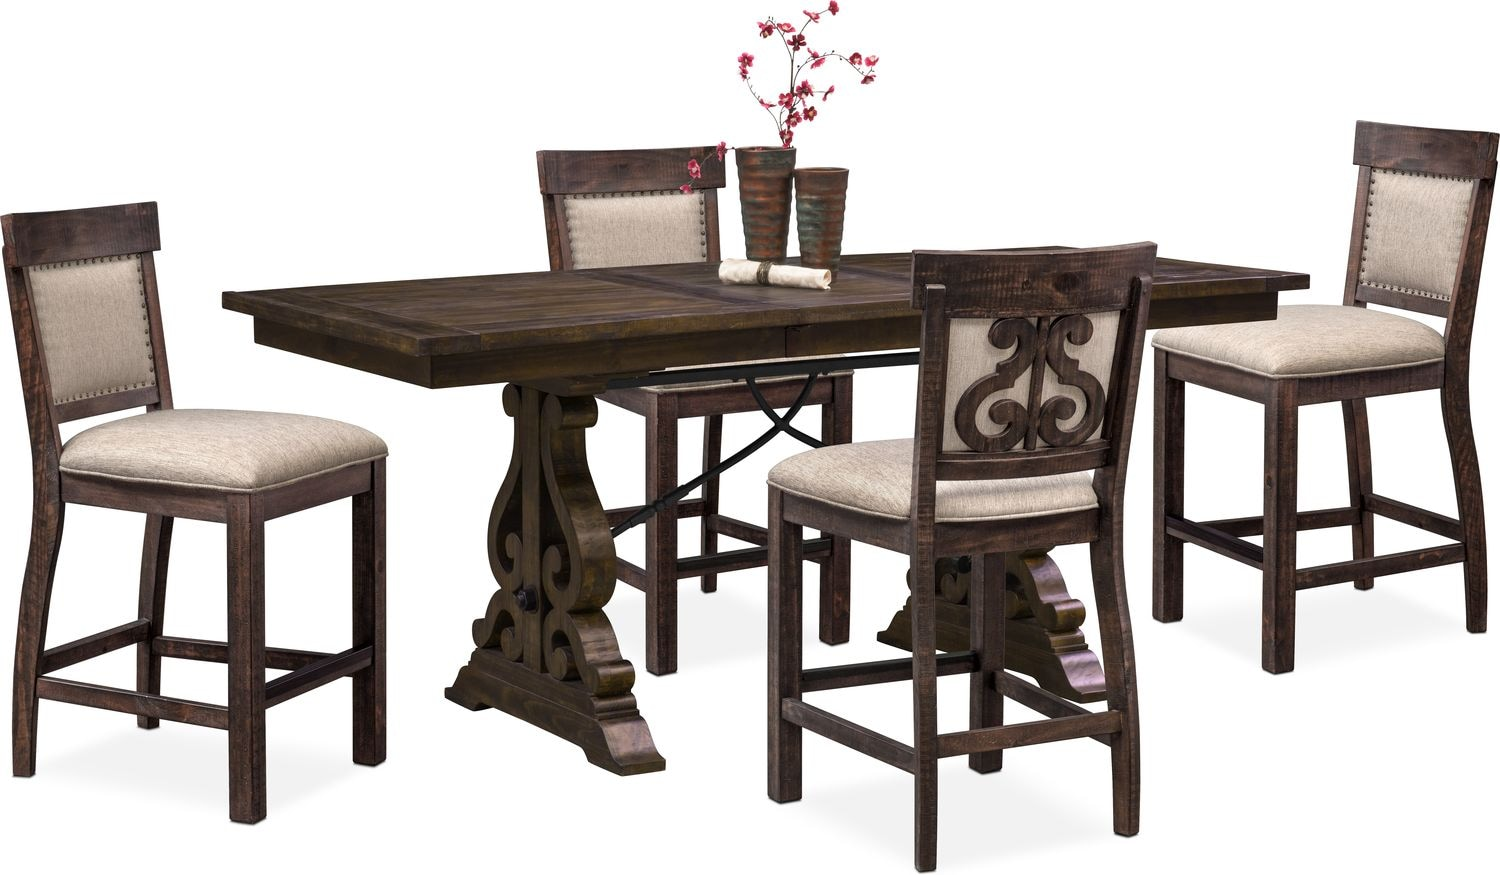 Charthouse CounterHeight Dining Table And Upholstered Stools - Counter height dining table with stools